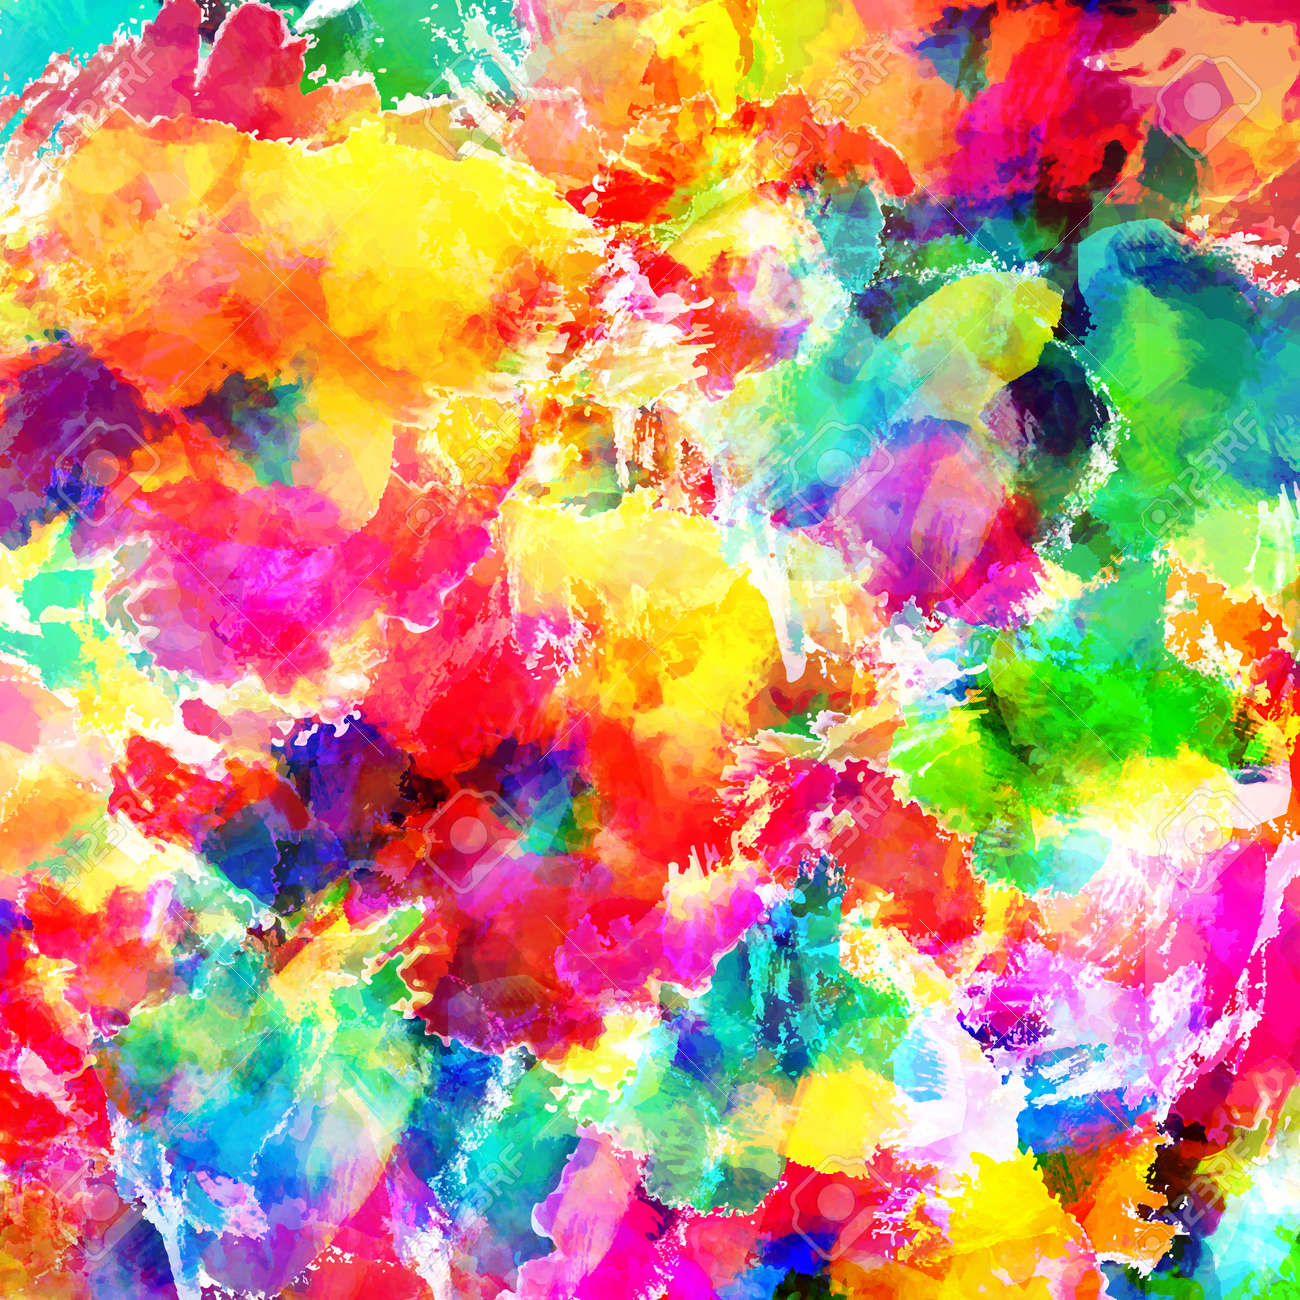 Abstract vibrant colors background. - 59433972